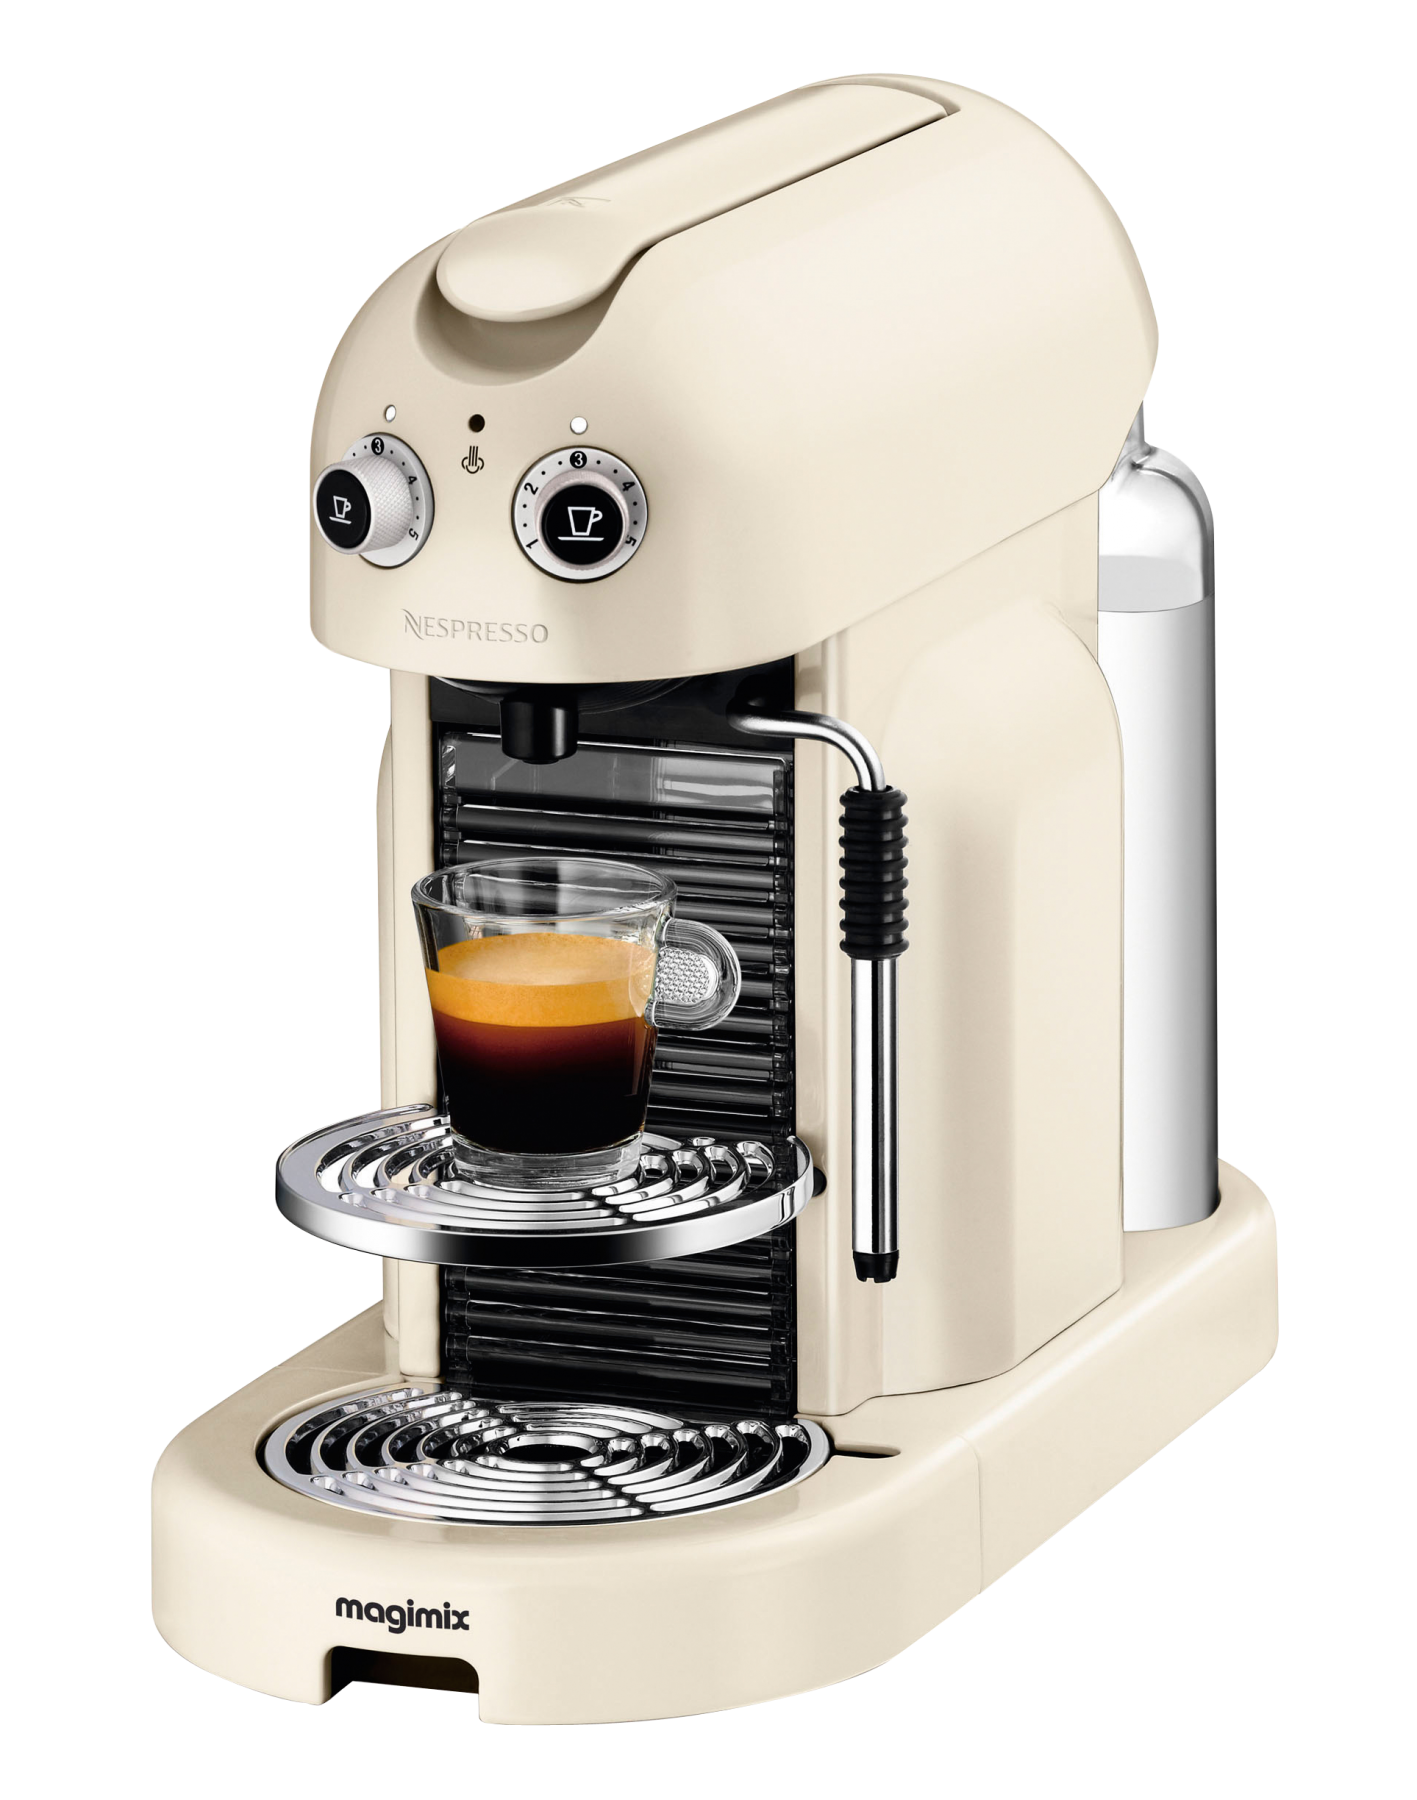 nespresso m400 maestria ivoire automatique magimix 11330 capsules compatibles nespresso. Black Bedroom Furniture Sets. Home Design Ideas